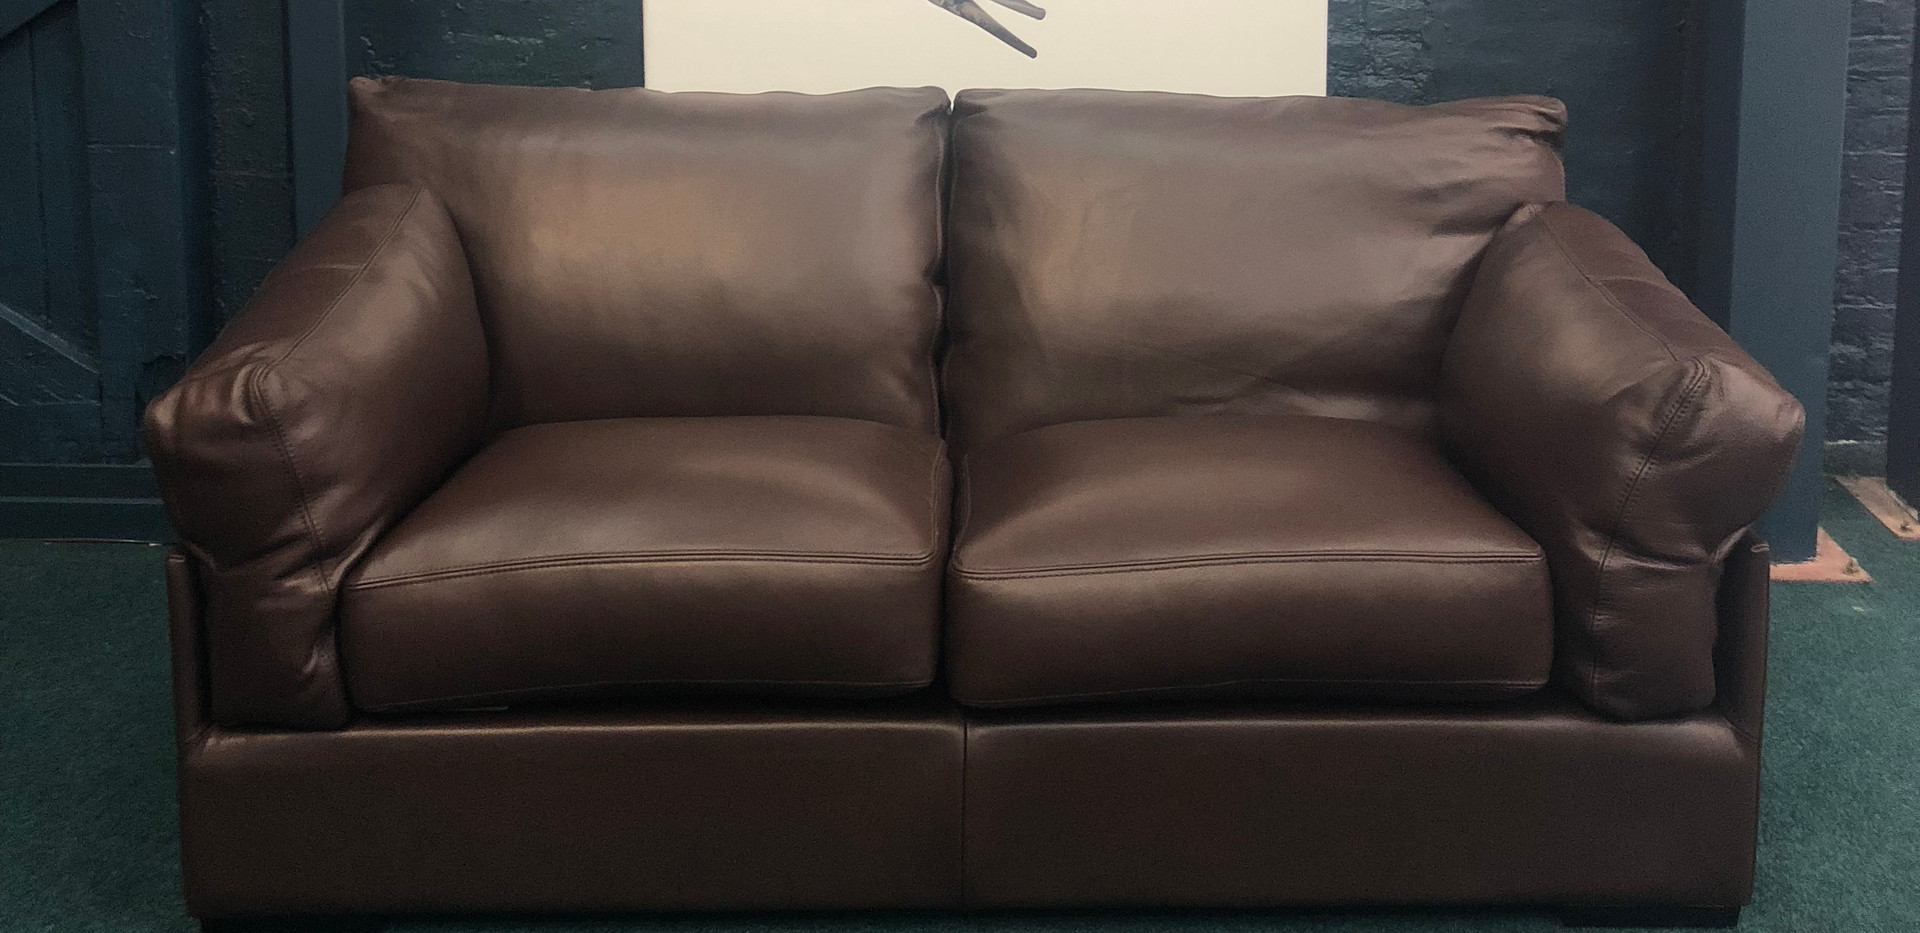 Java Medium Sofa